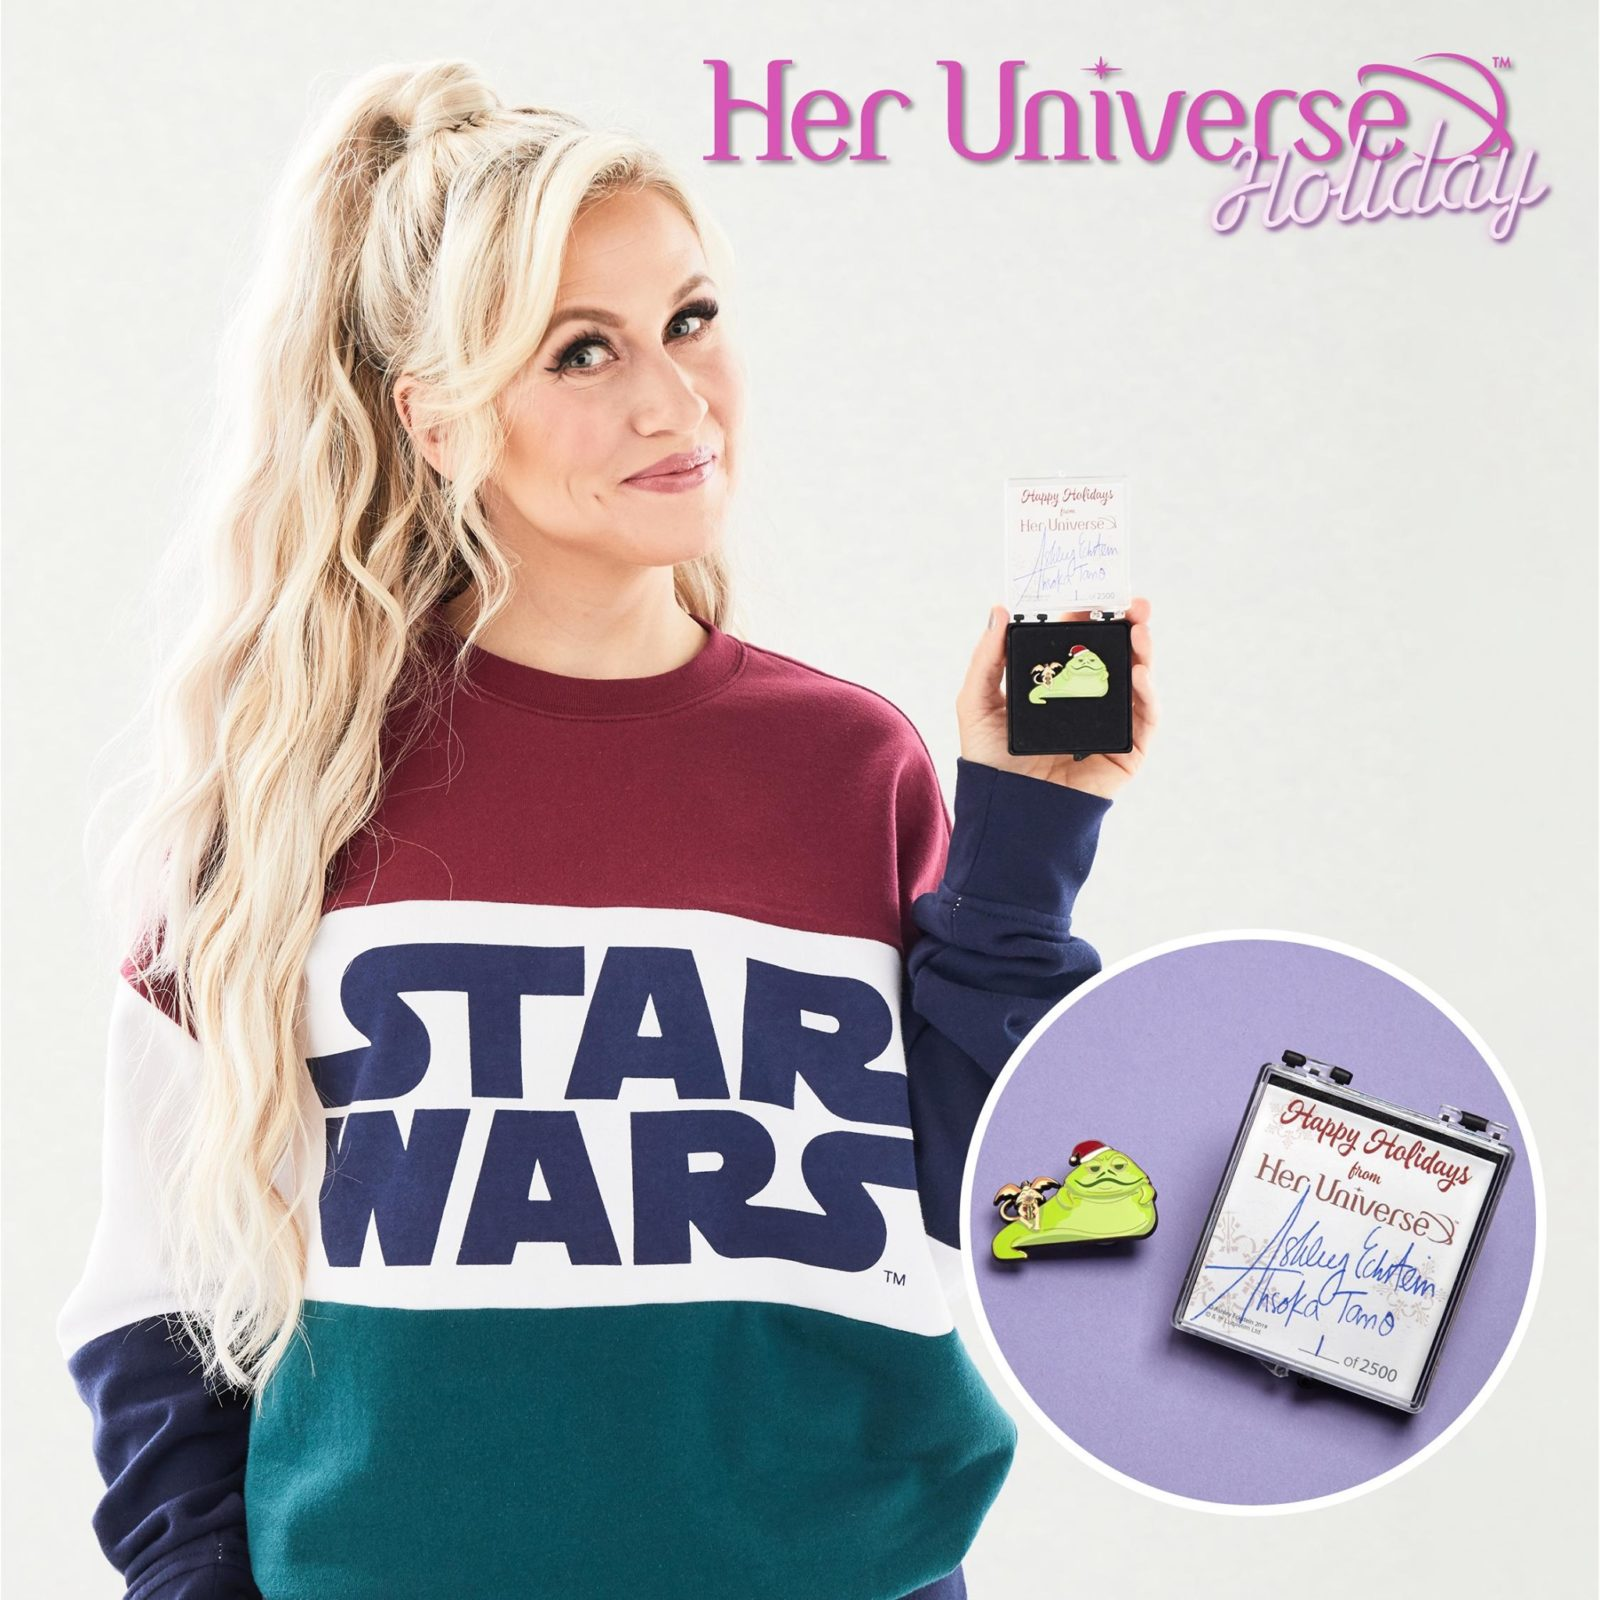 Her Universe Star Wars Holiday 2019 Pin - Jabba the Hutt and Salacious Crumb